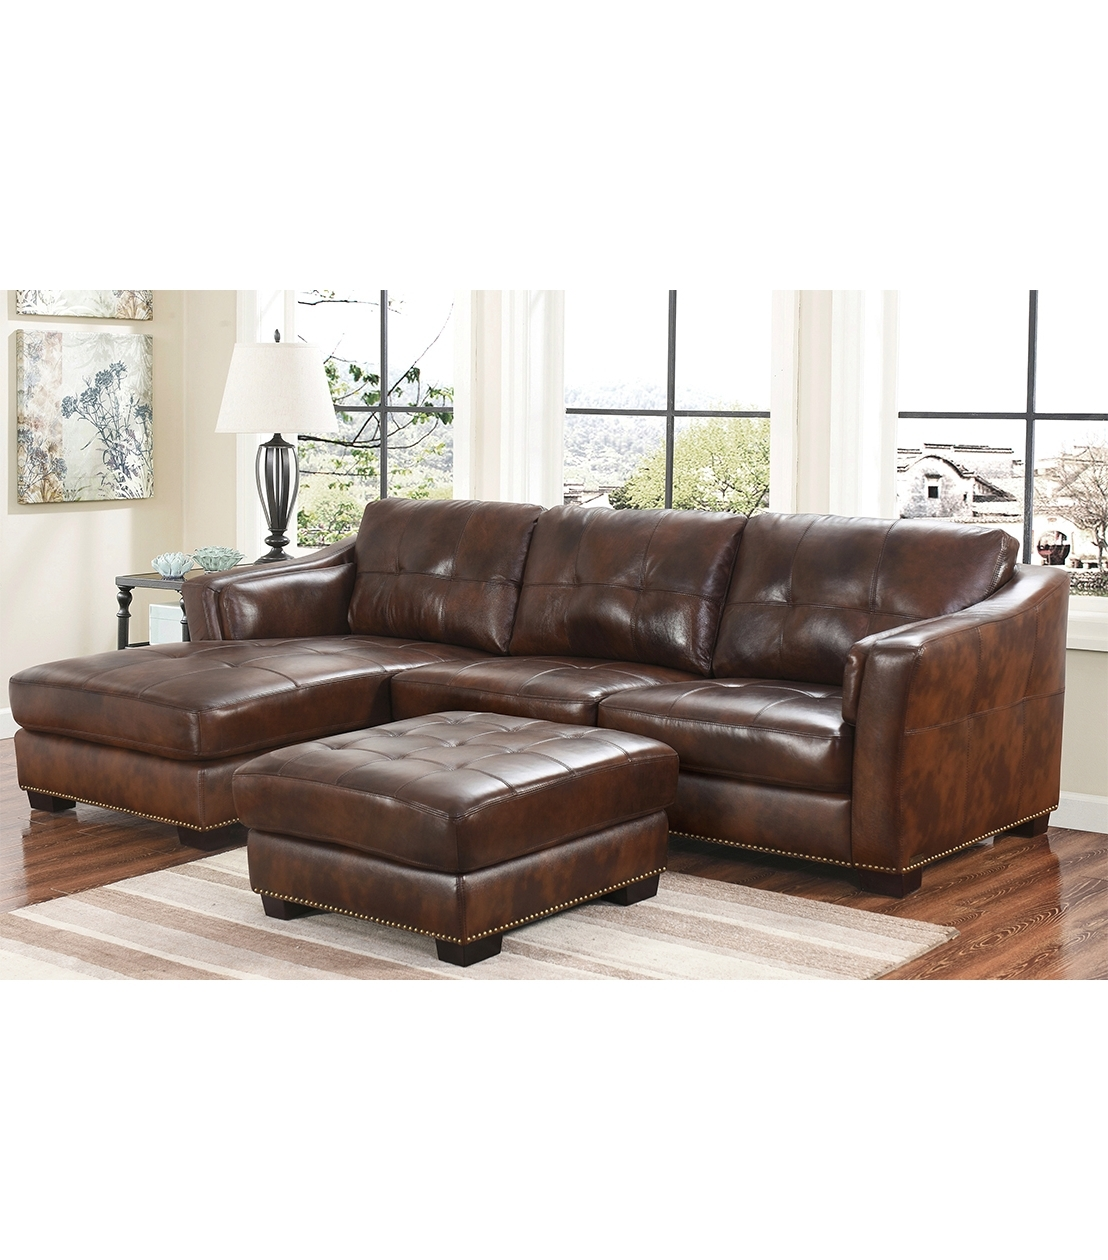 Abbyson Sectional Sofas Within Fashionable Sectionals : Rosemary Leather Sectional (View 9 of 20)